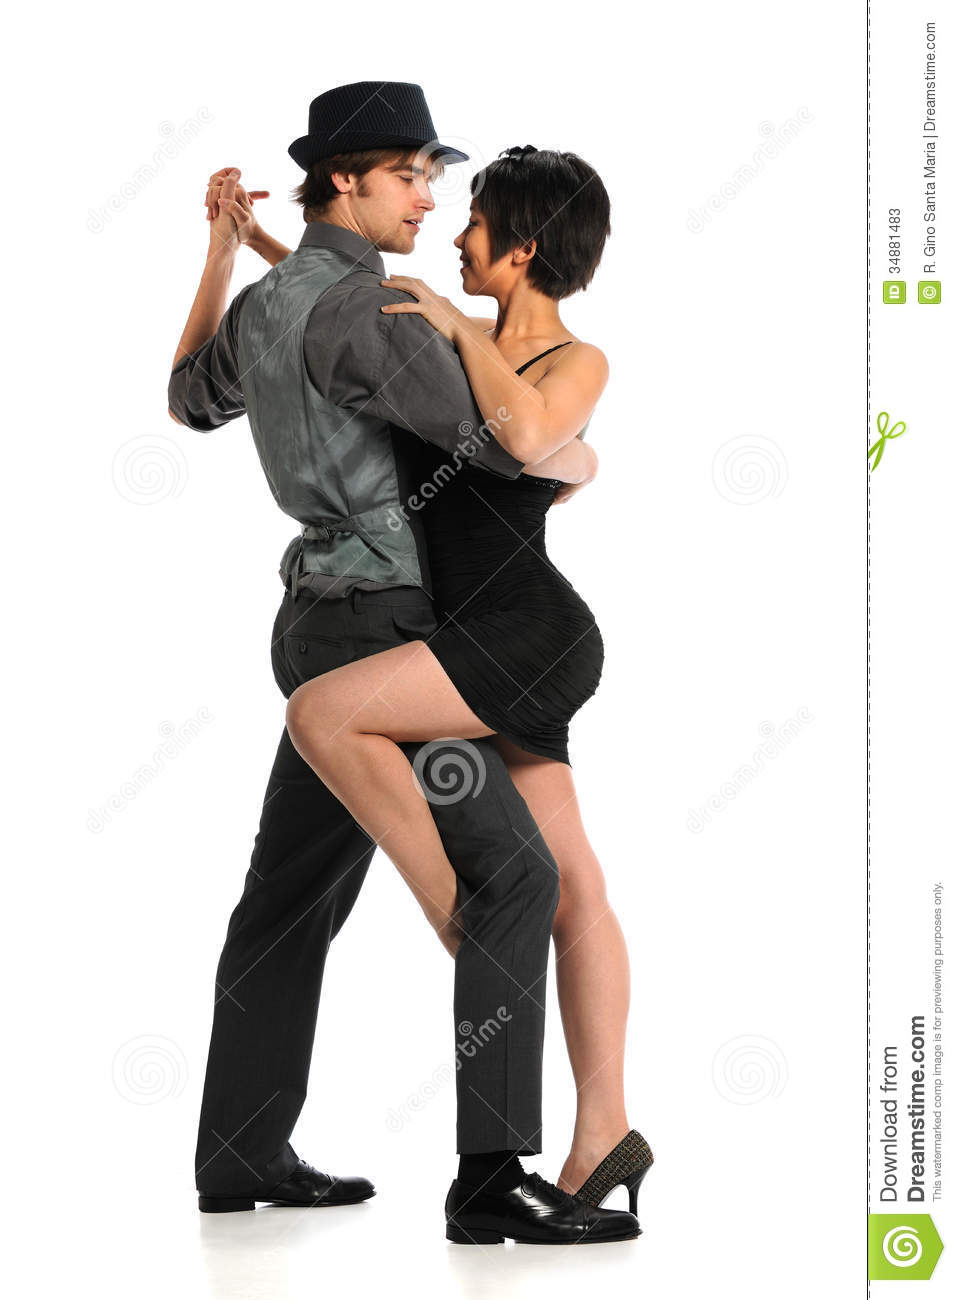 Young couple dancing tango isolated over white background.